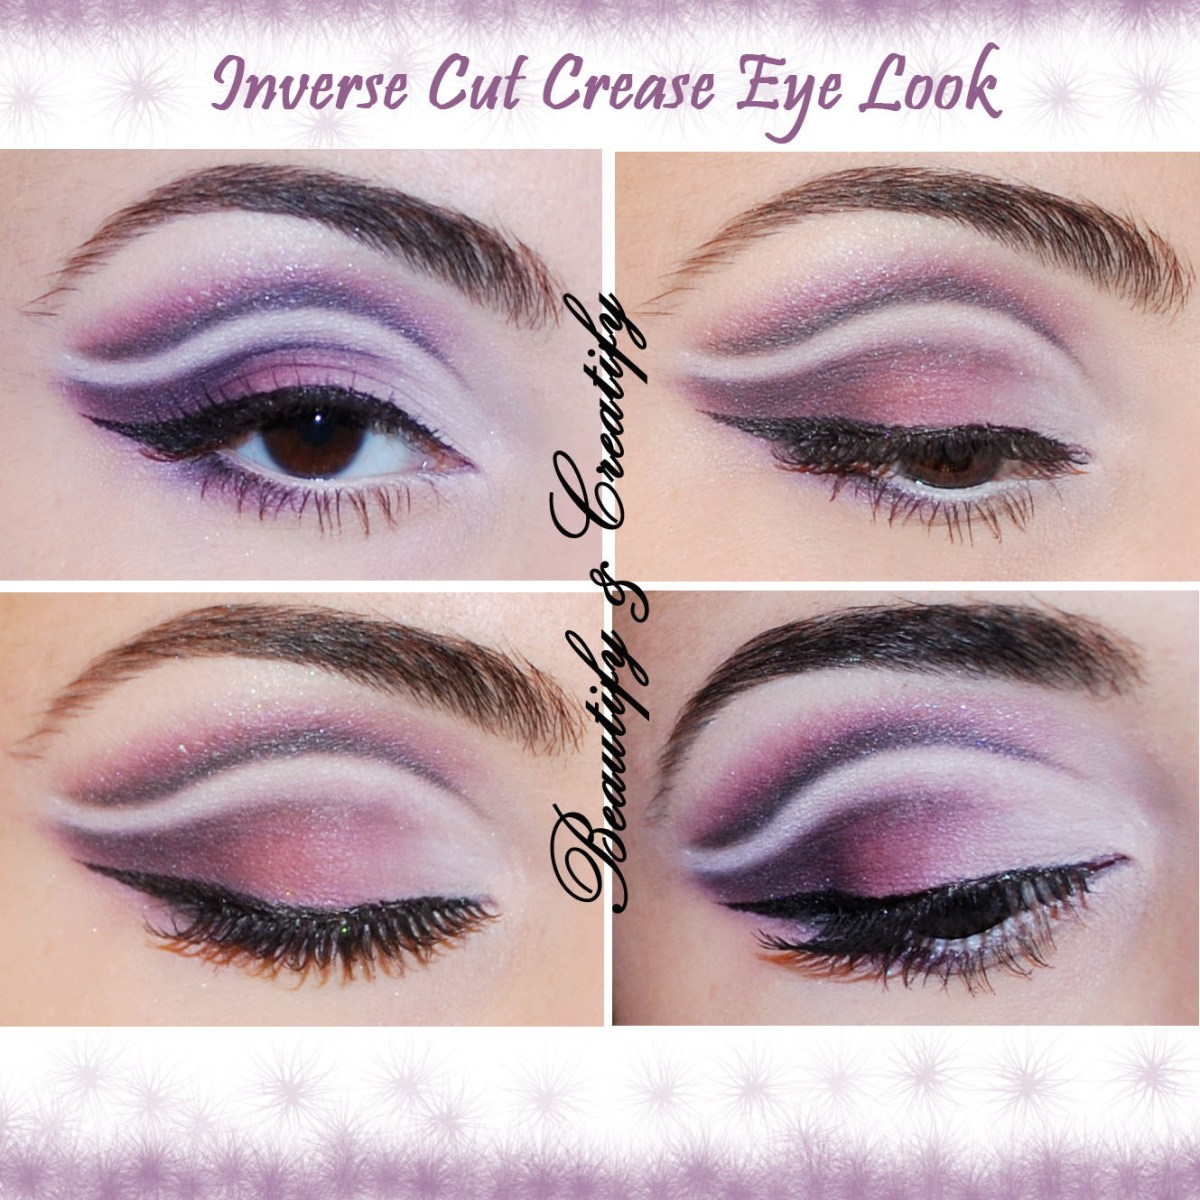 Cut Crease Eye Makeup Inverse Cut Crease Eye Look